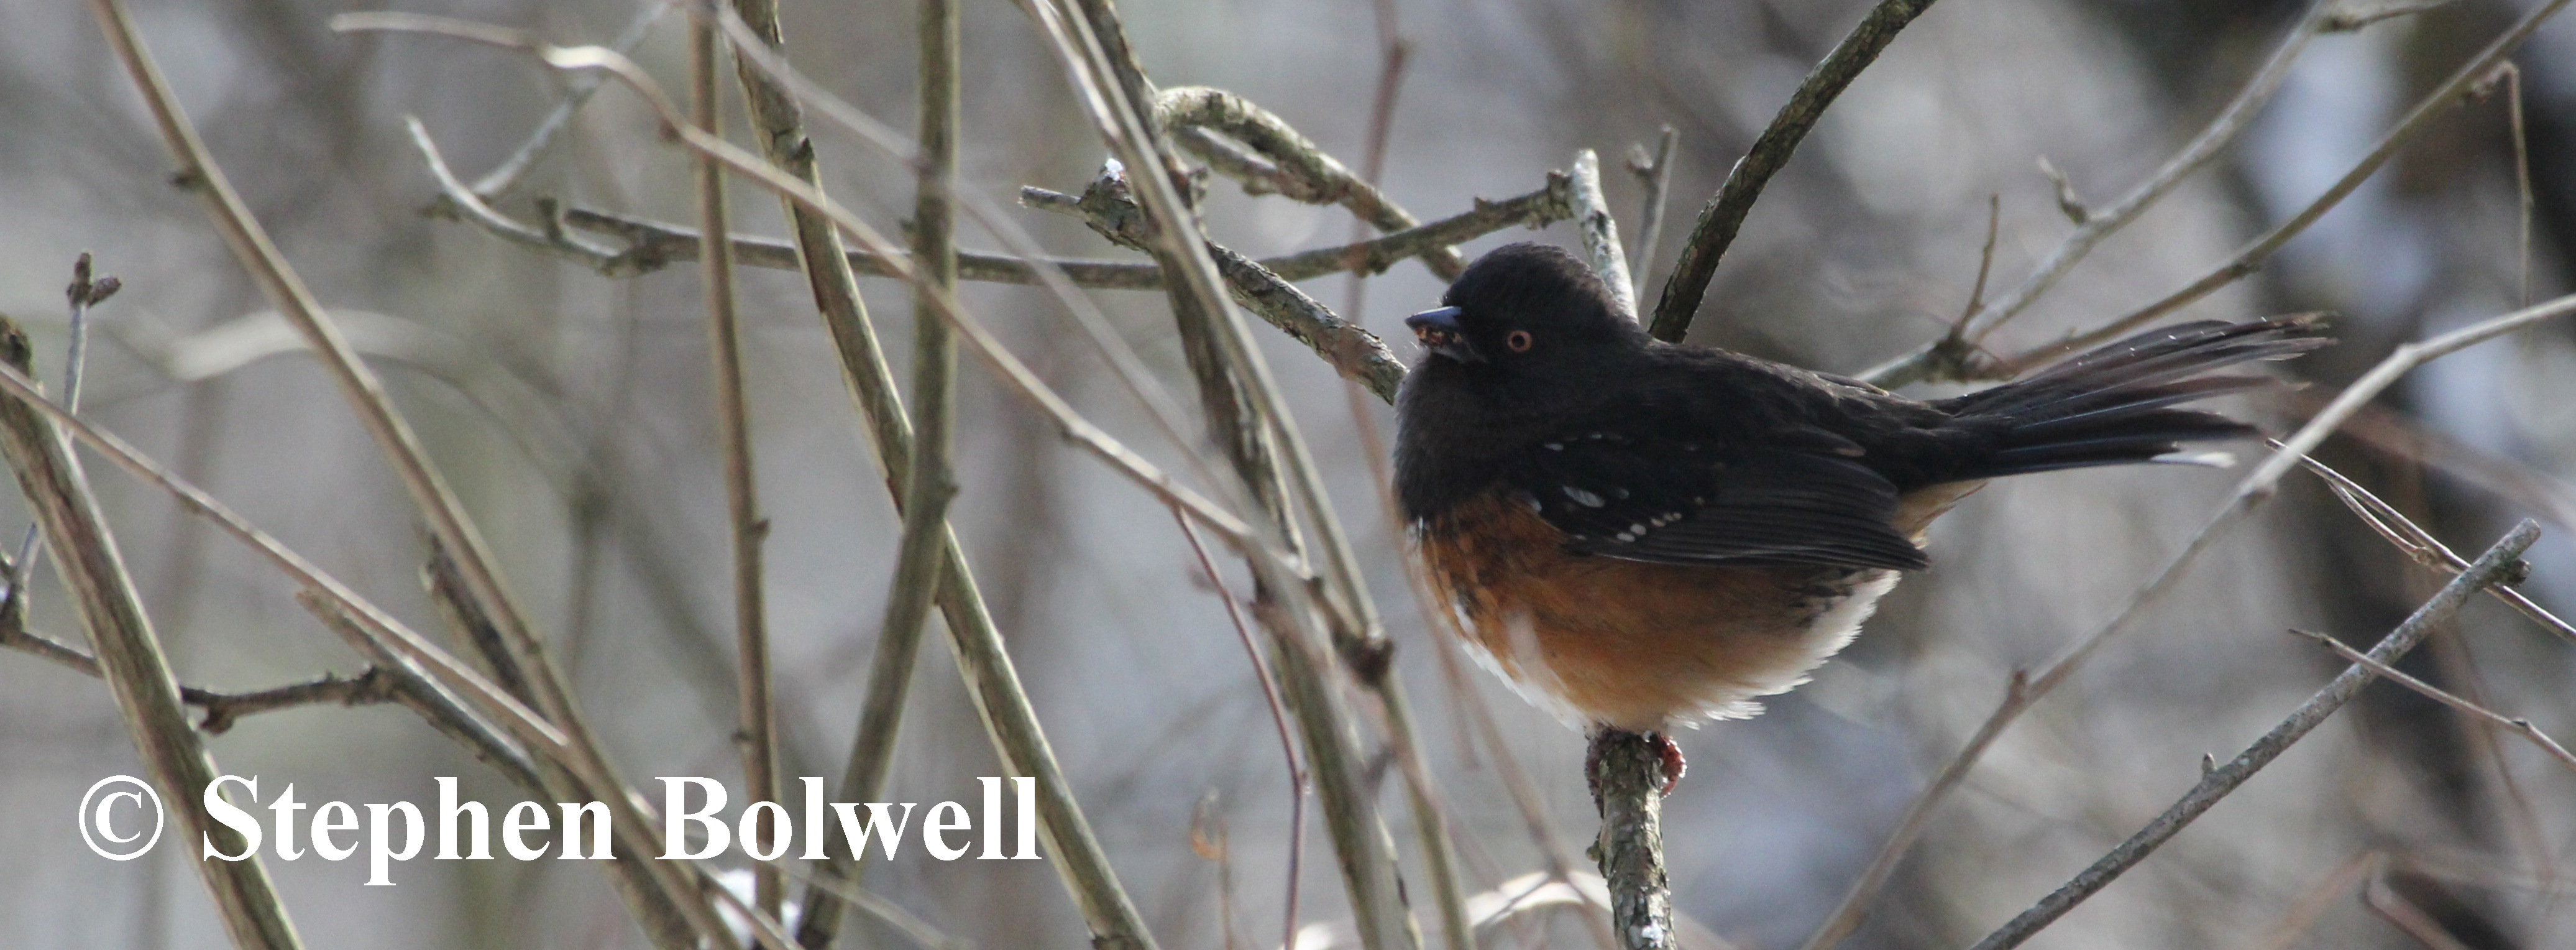 The Spotted Towhee is resident year round, but has been less frequently seen over the last twelve month, possibly due to disturbance caused by local urban development.